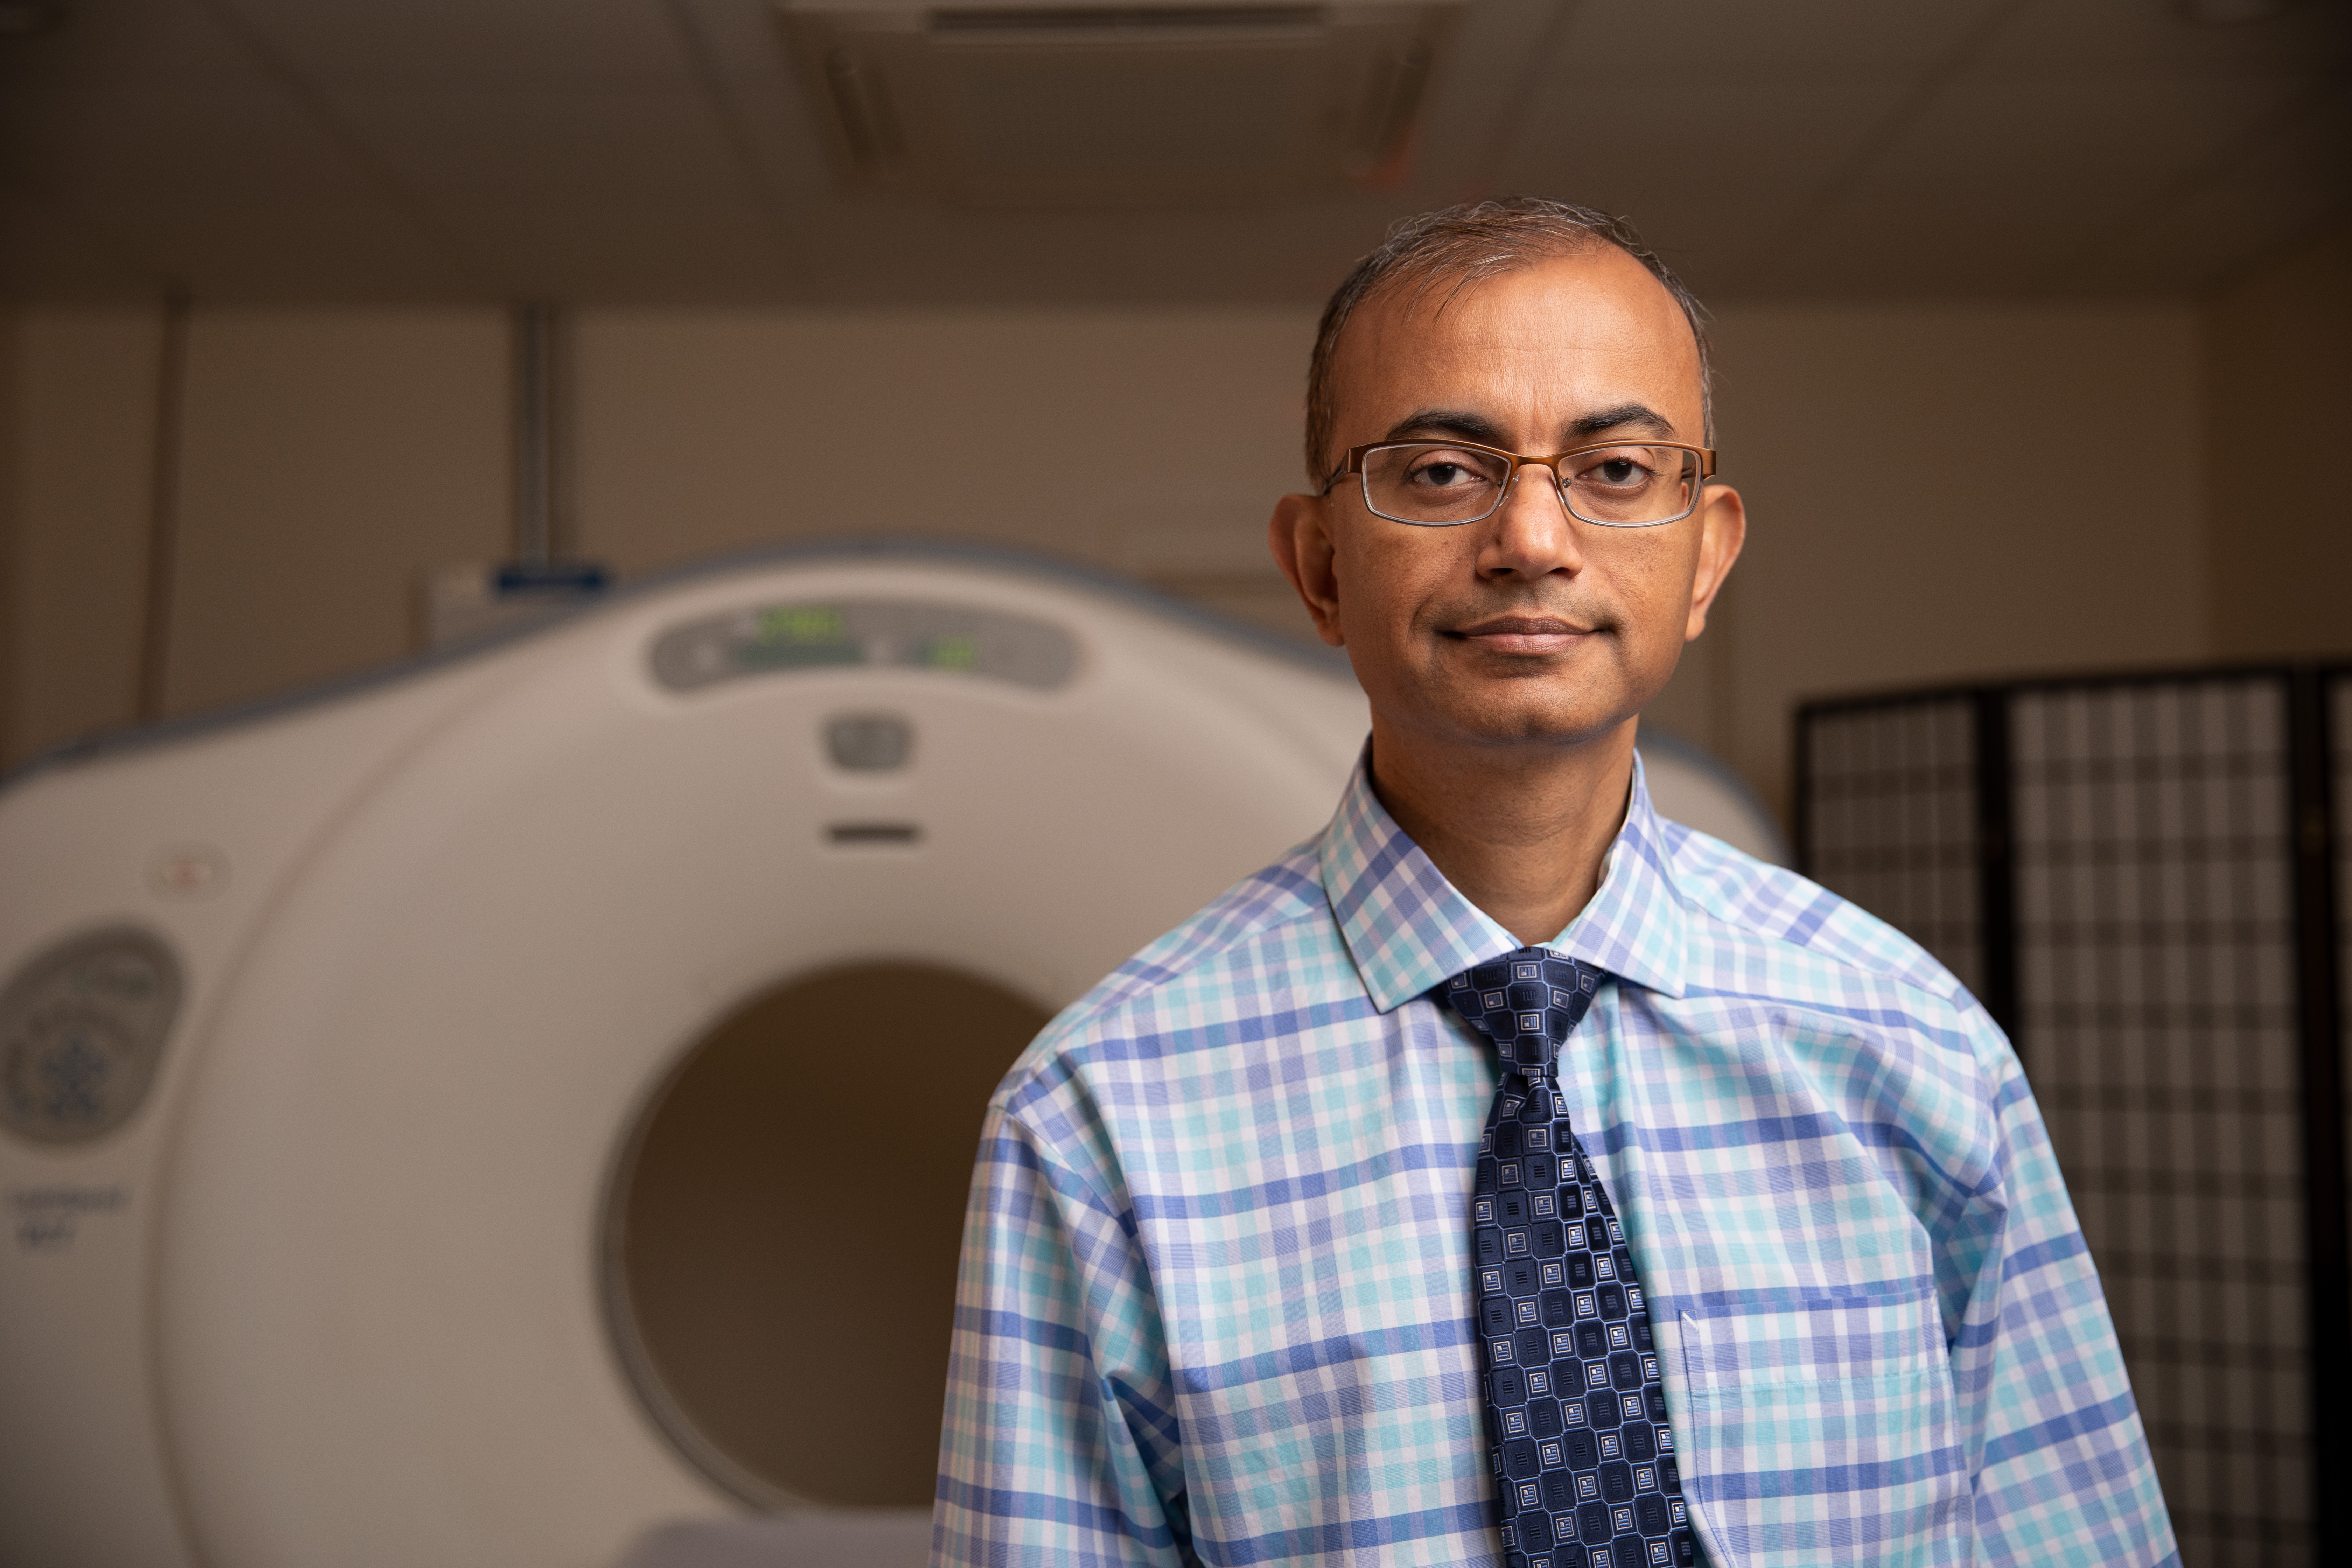 This surgeon wants to offer cheap MRIs. A state law is getting in his way.